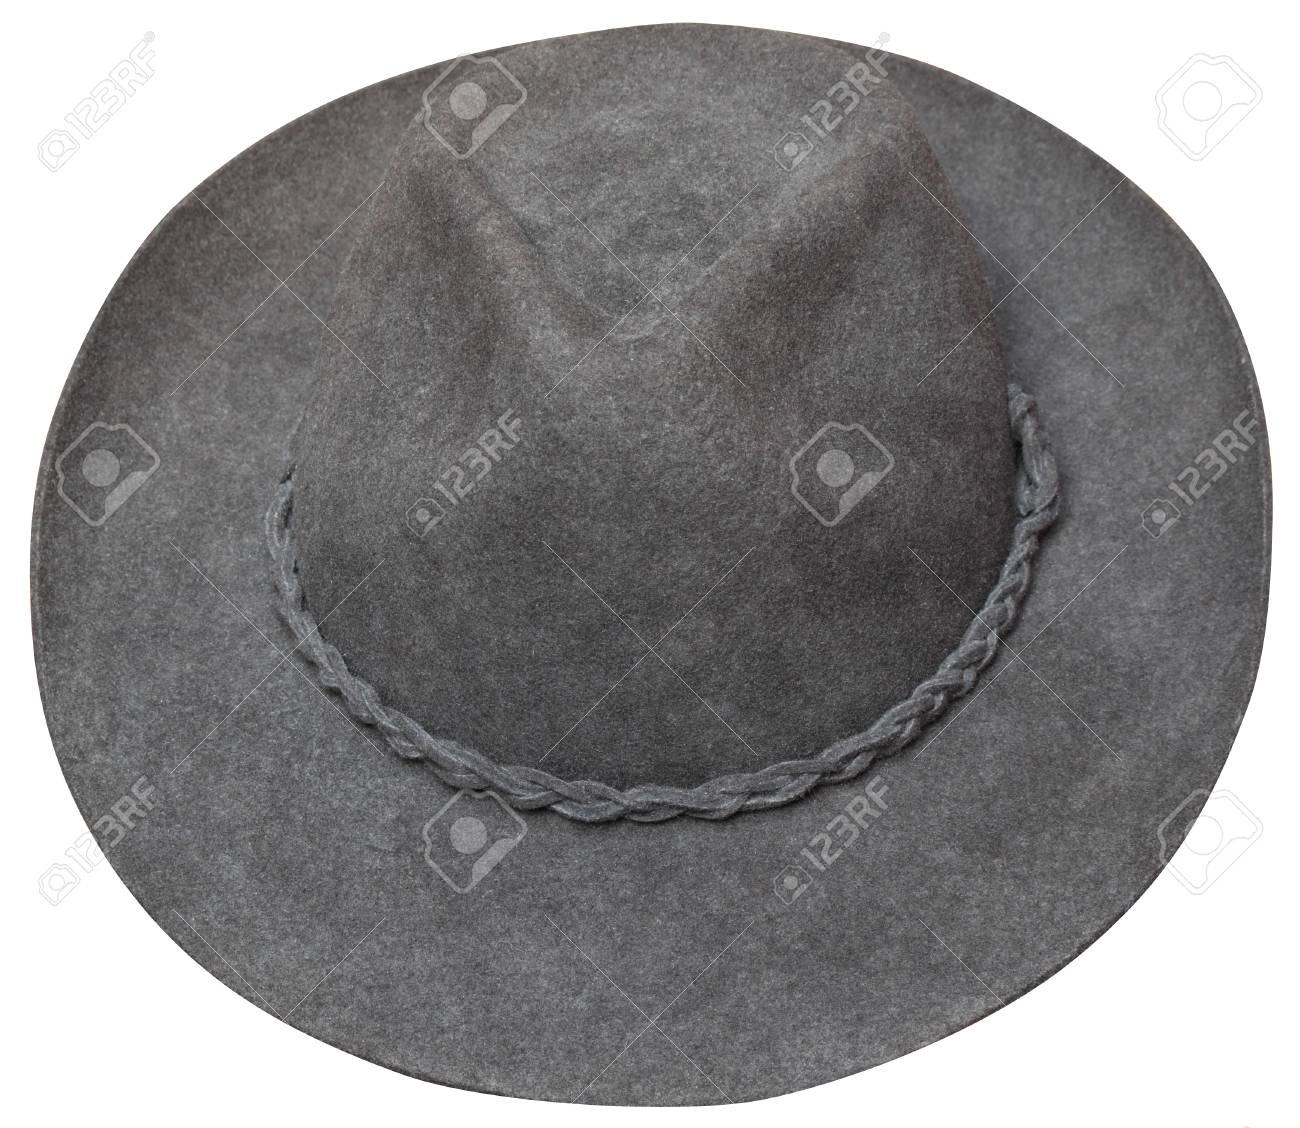 Brown cowboy hat inclined view. This hat was bought in Pisac(Peru) in summer 2011 for 25 sol. Stock Photo - 11965574